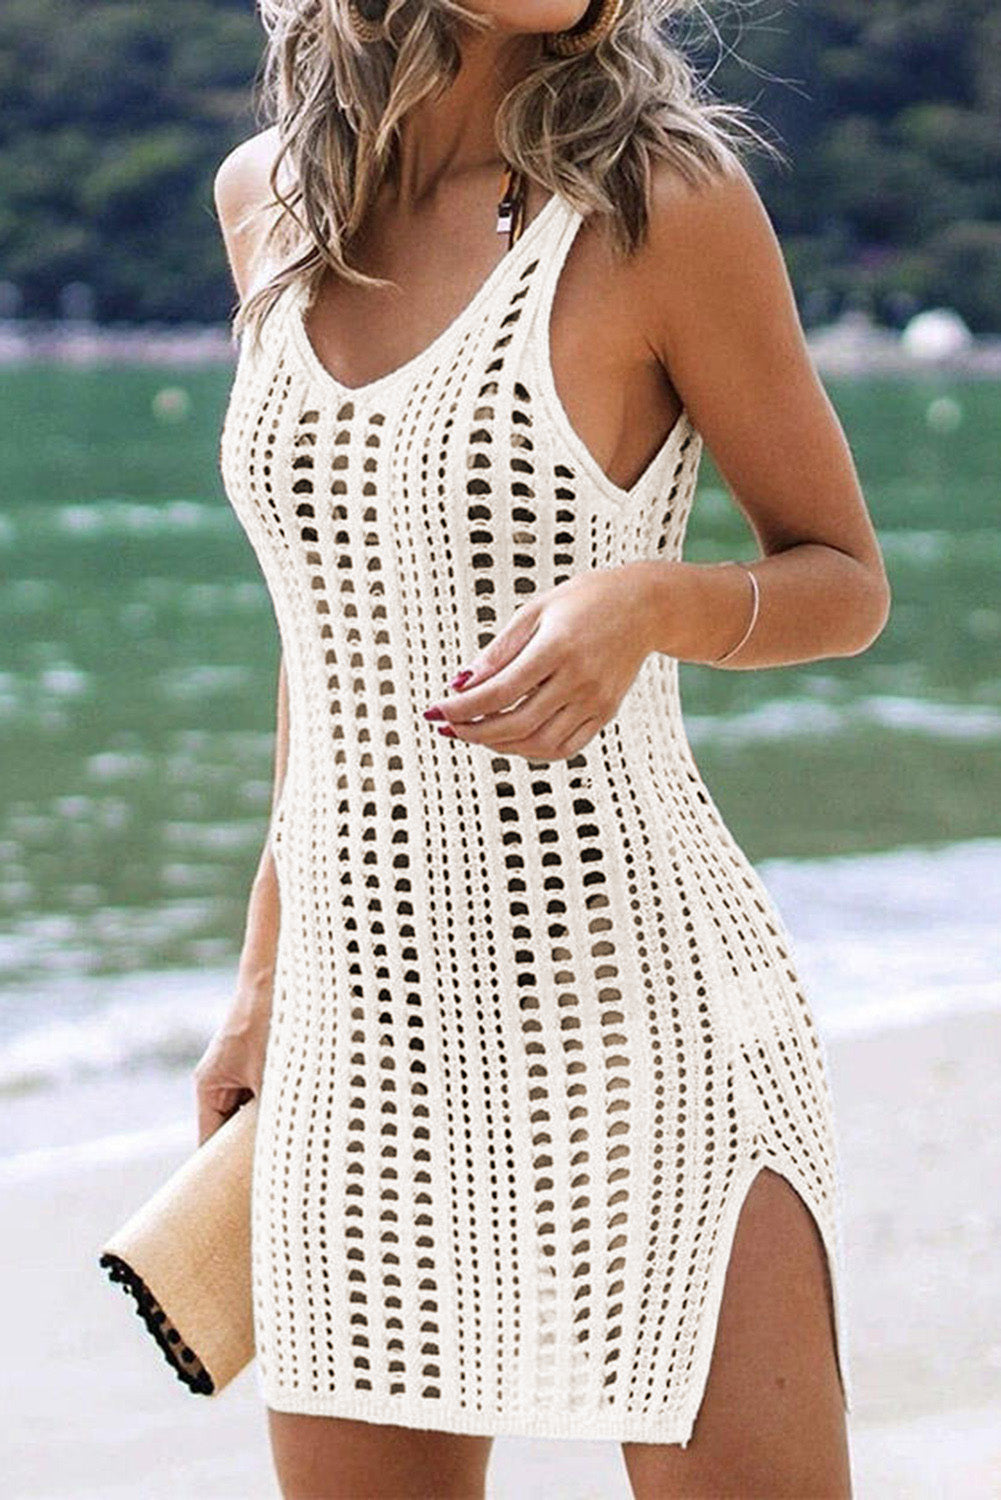 White Hollow Out Crochet Cover Up Beach Dress with Slits Beach Cover-ups Discount Designer Fashion Clothes Shoes Bags Women Men Kids Children Black Owned Business